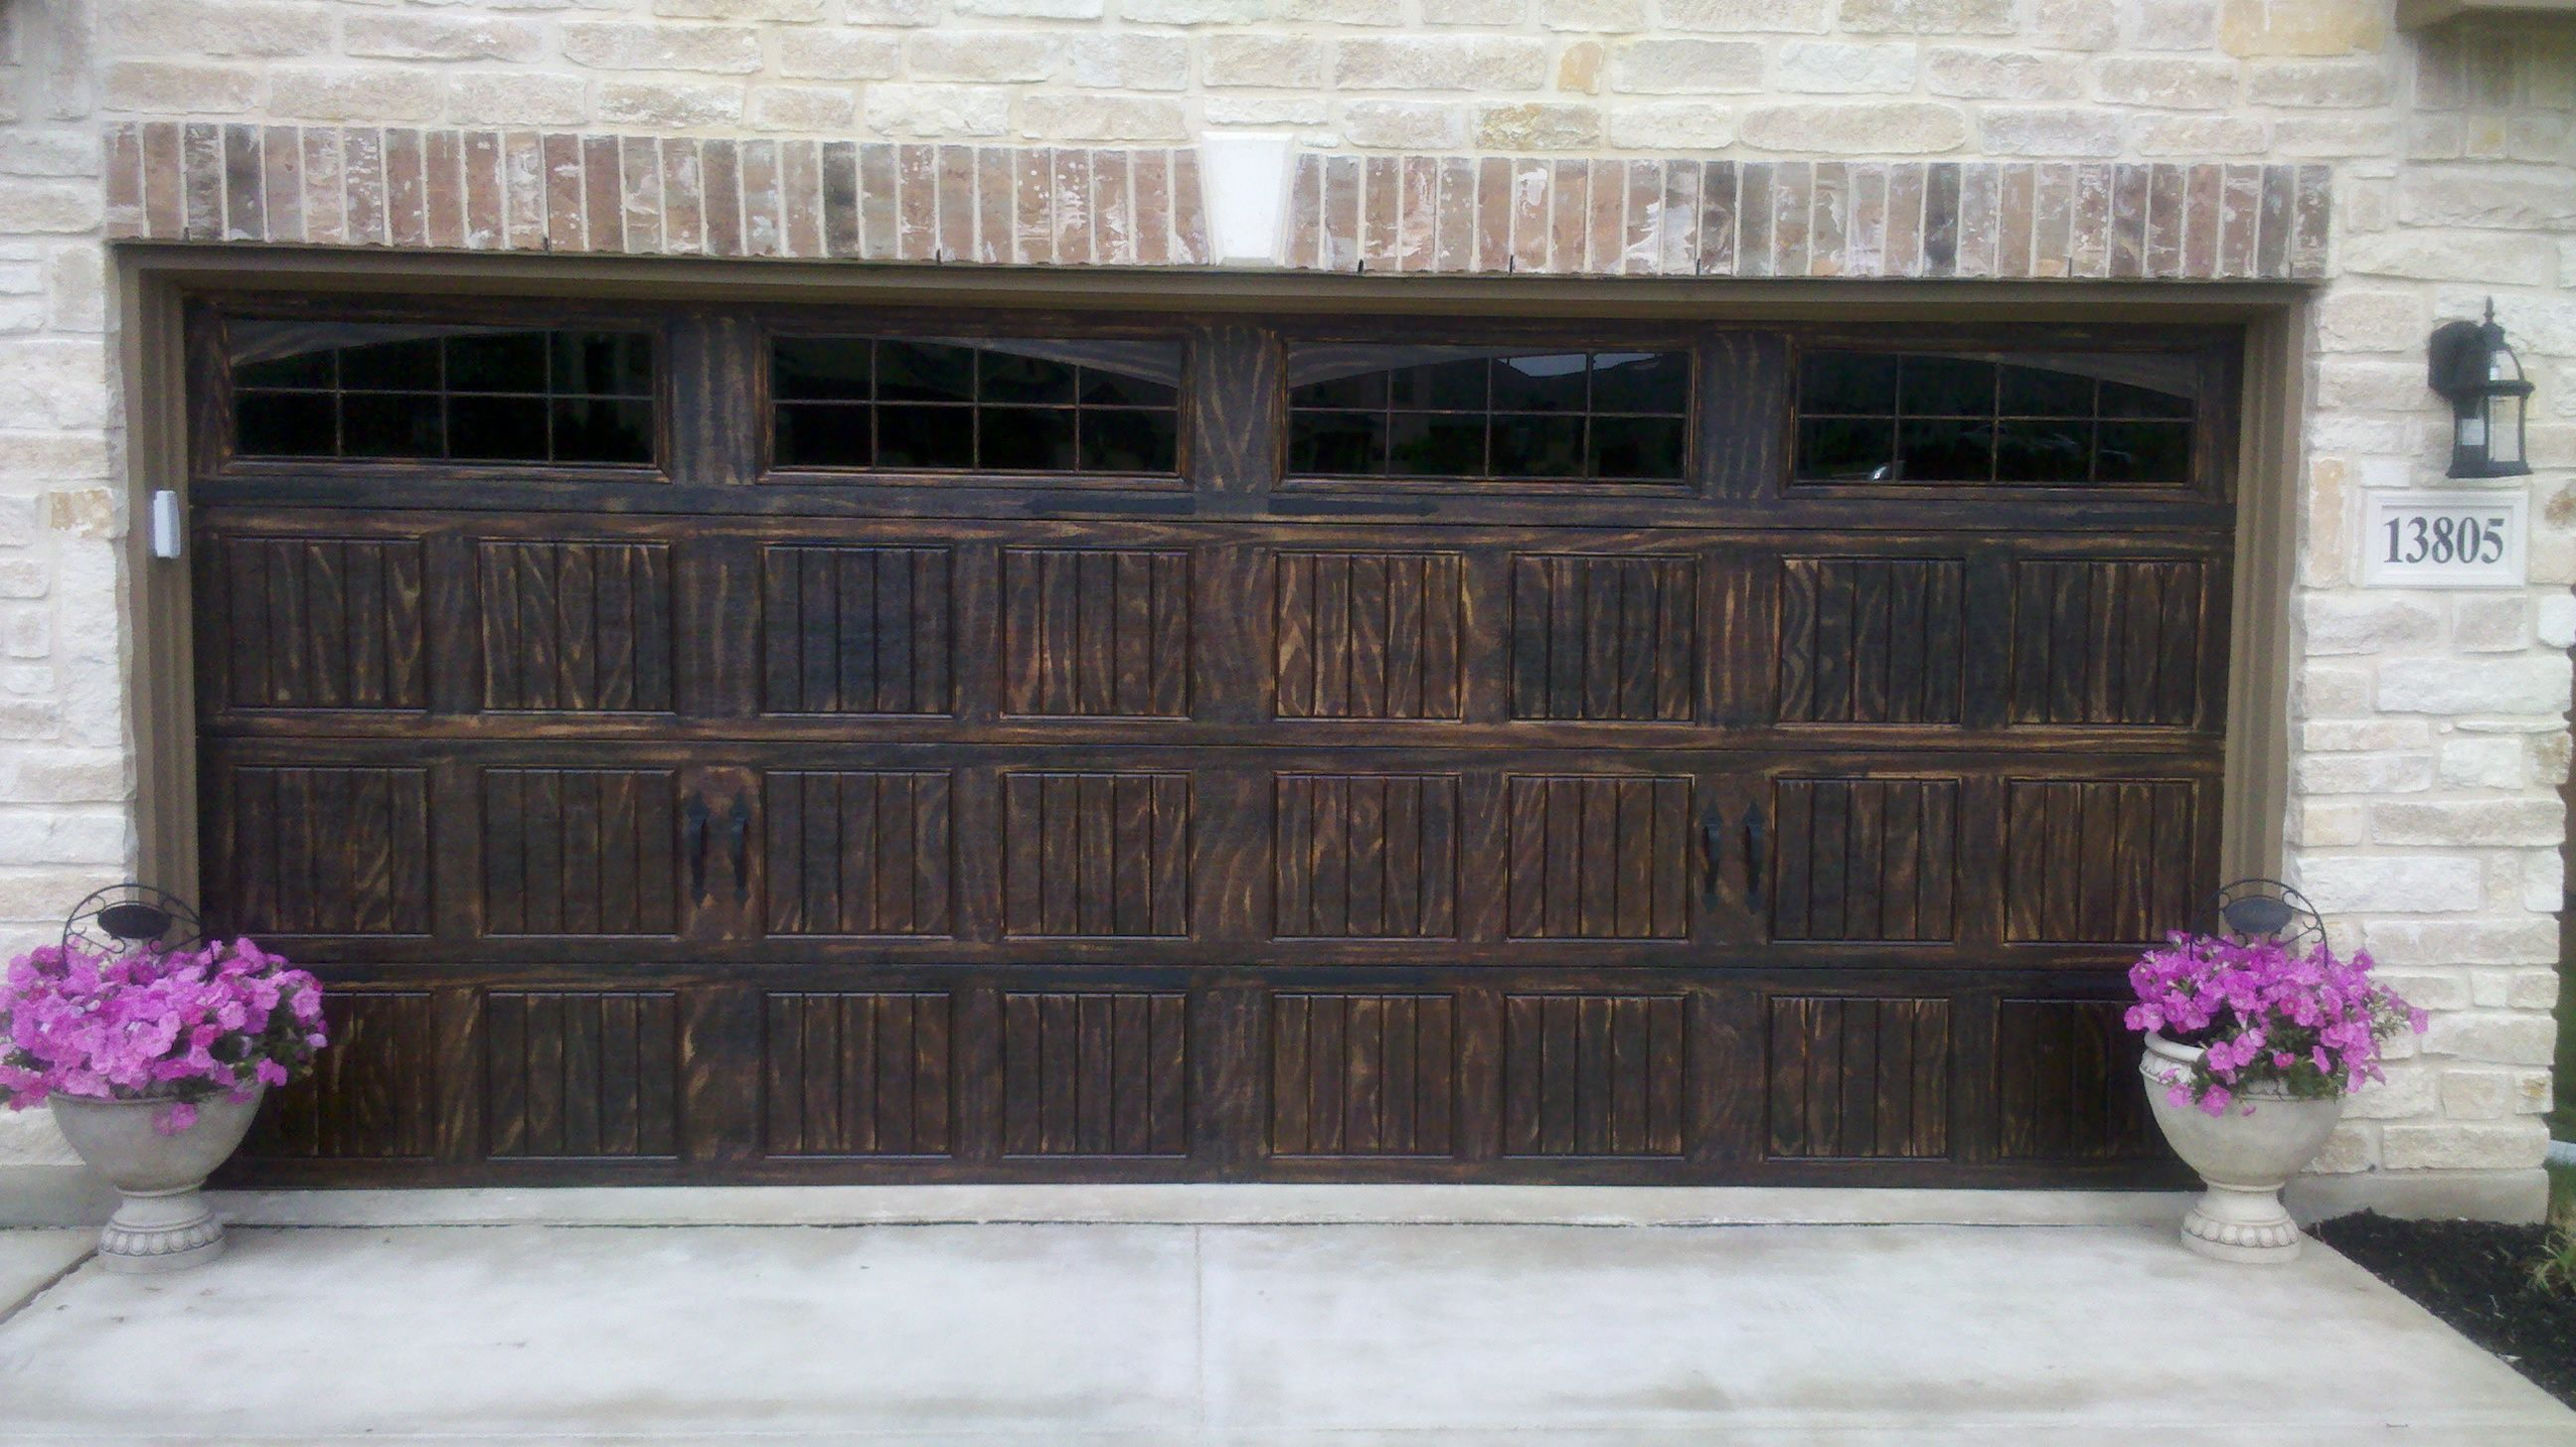 Faux wood painted garage doors - Wood Grain Painting On Steel Garage Door 16x7 Wayne Dalton 9100 Sonoma Style With